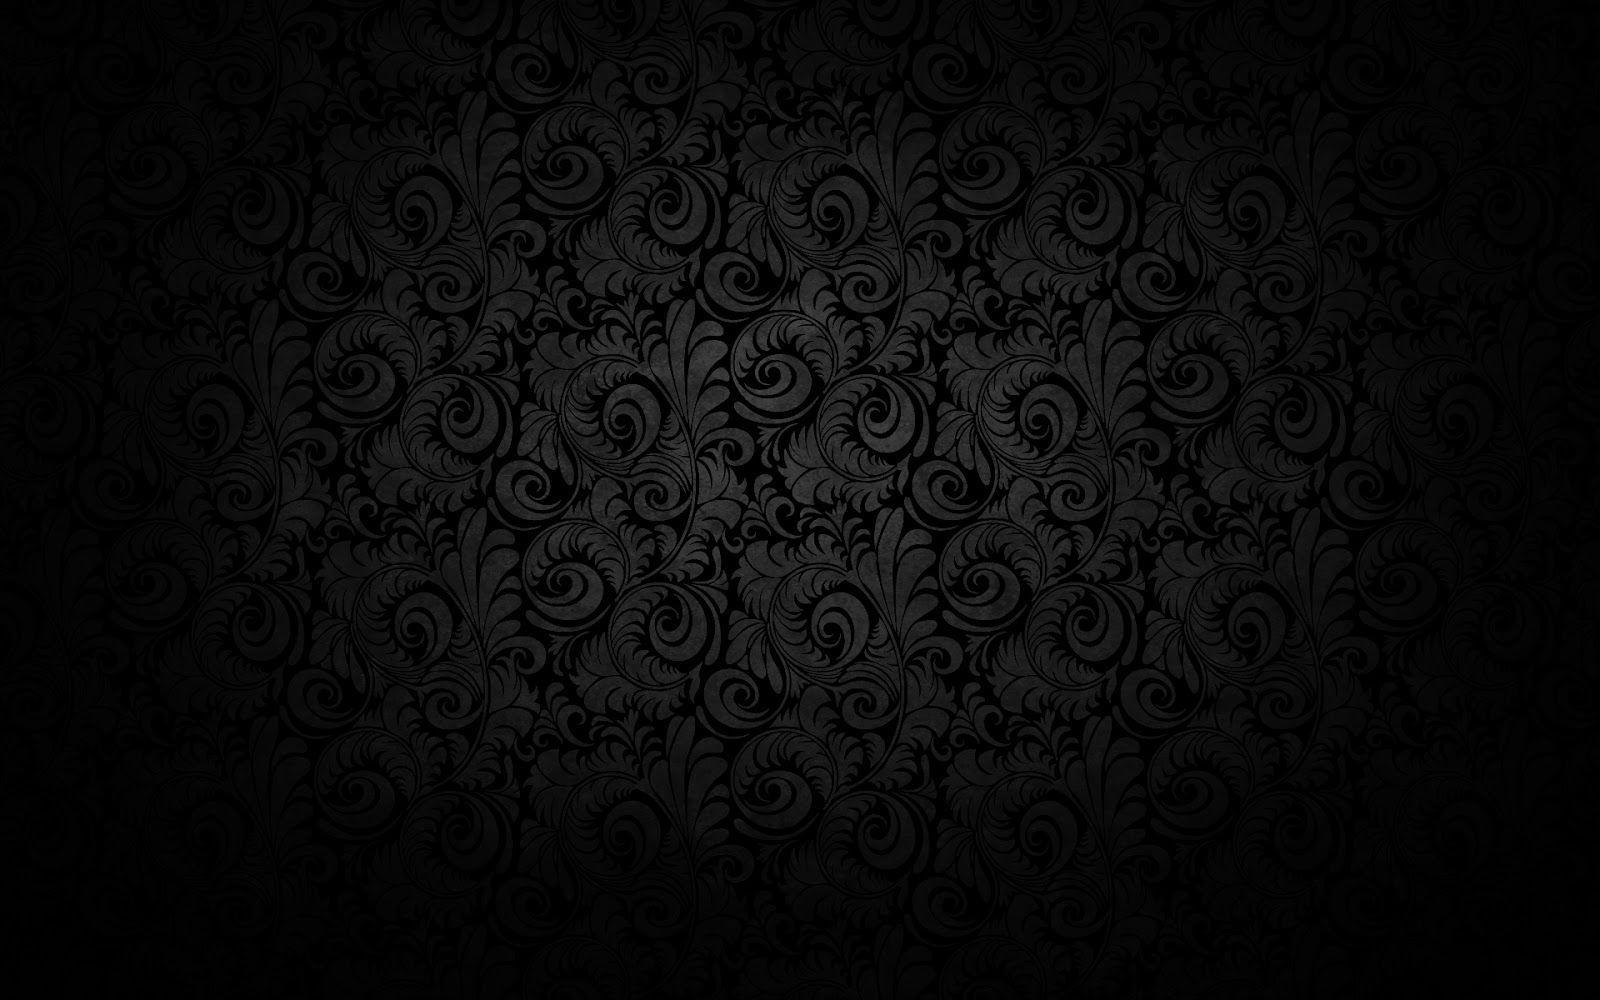 Black Backgrounds With Designs Wallpaper Cave